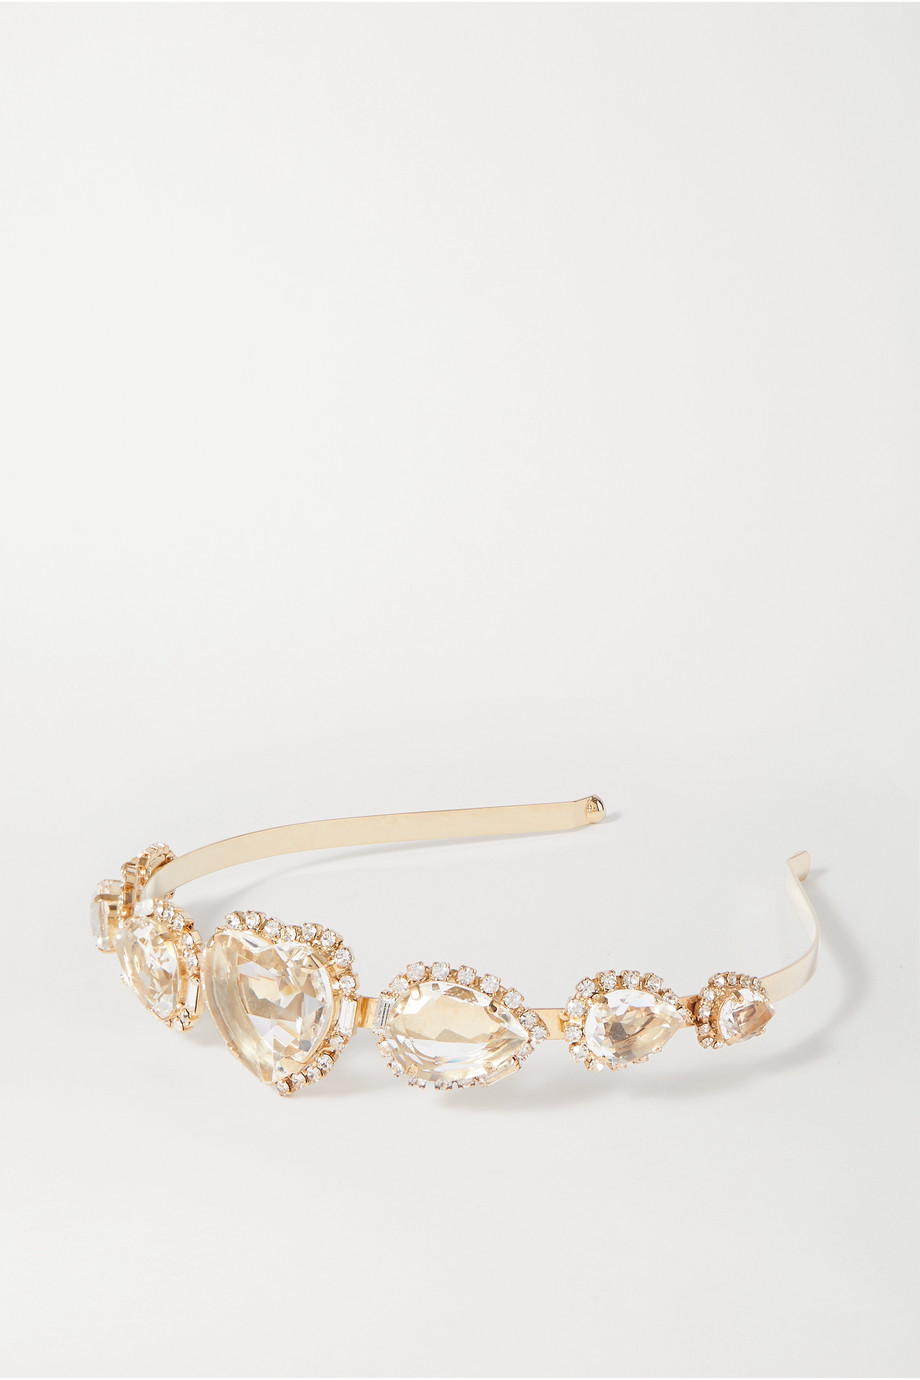 Rosantica Gold-tone and crystal headband